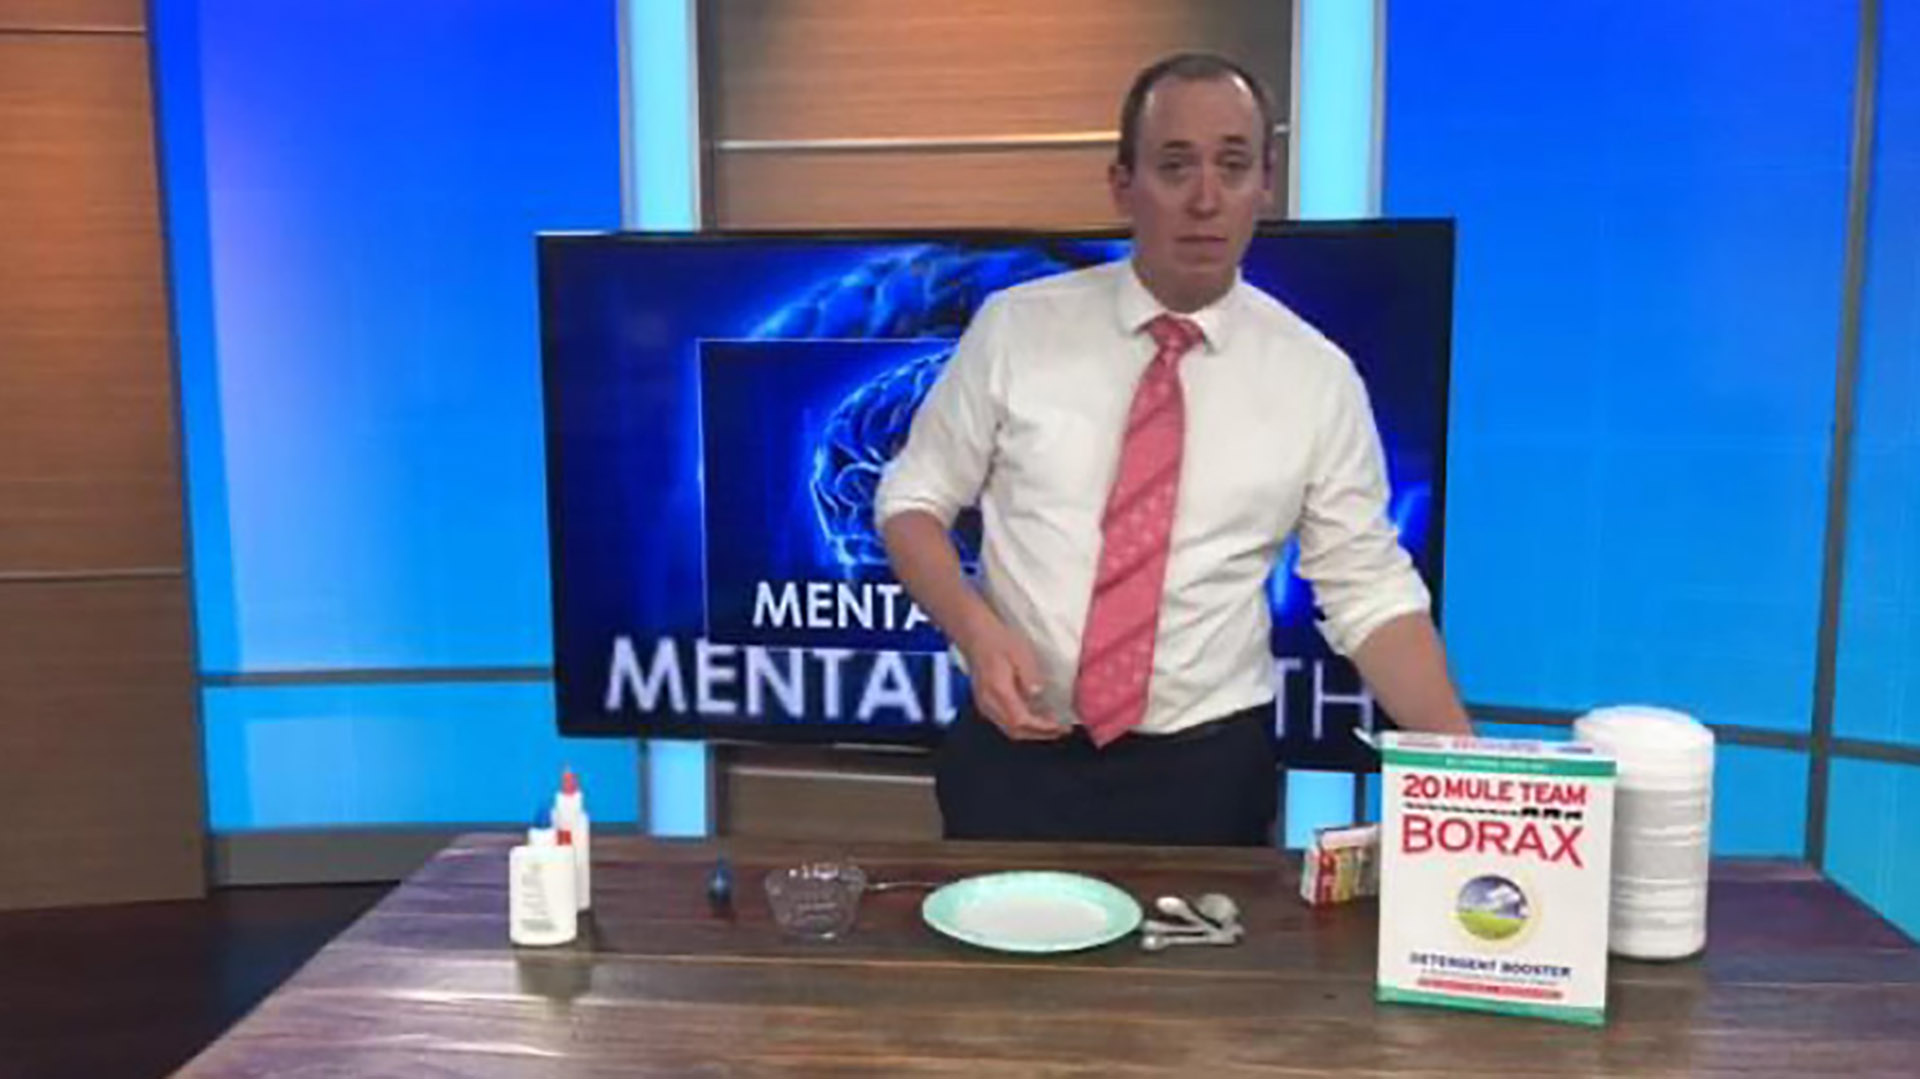 Meteorologist Mark Holley conducting a science experiment on a table